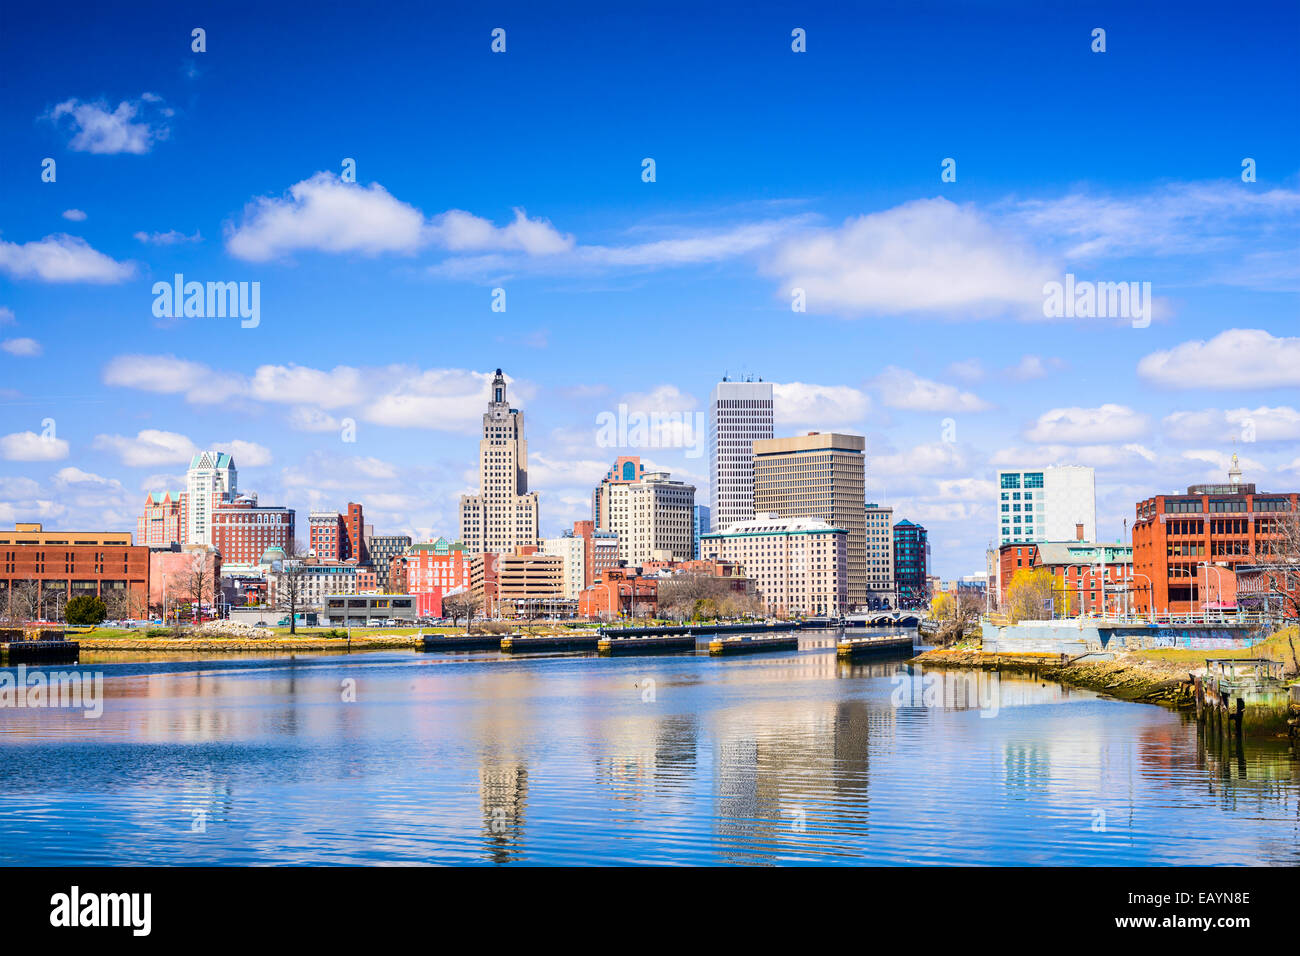 Providence, Rhode Island city skyline on the river. - Stock Image